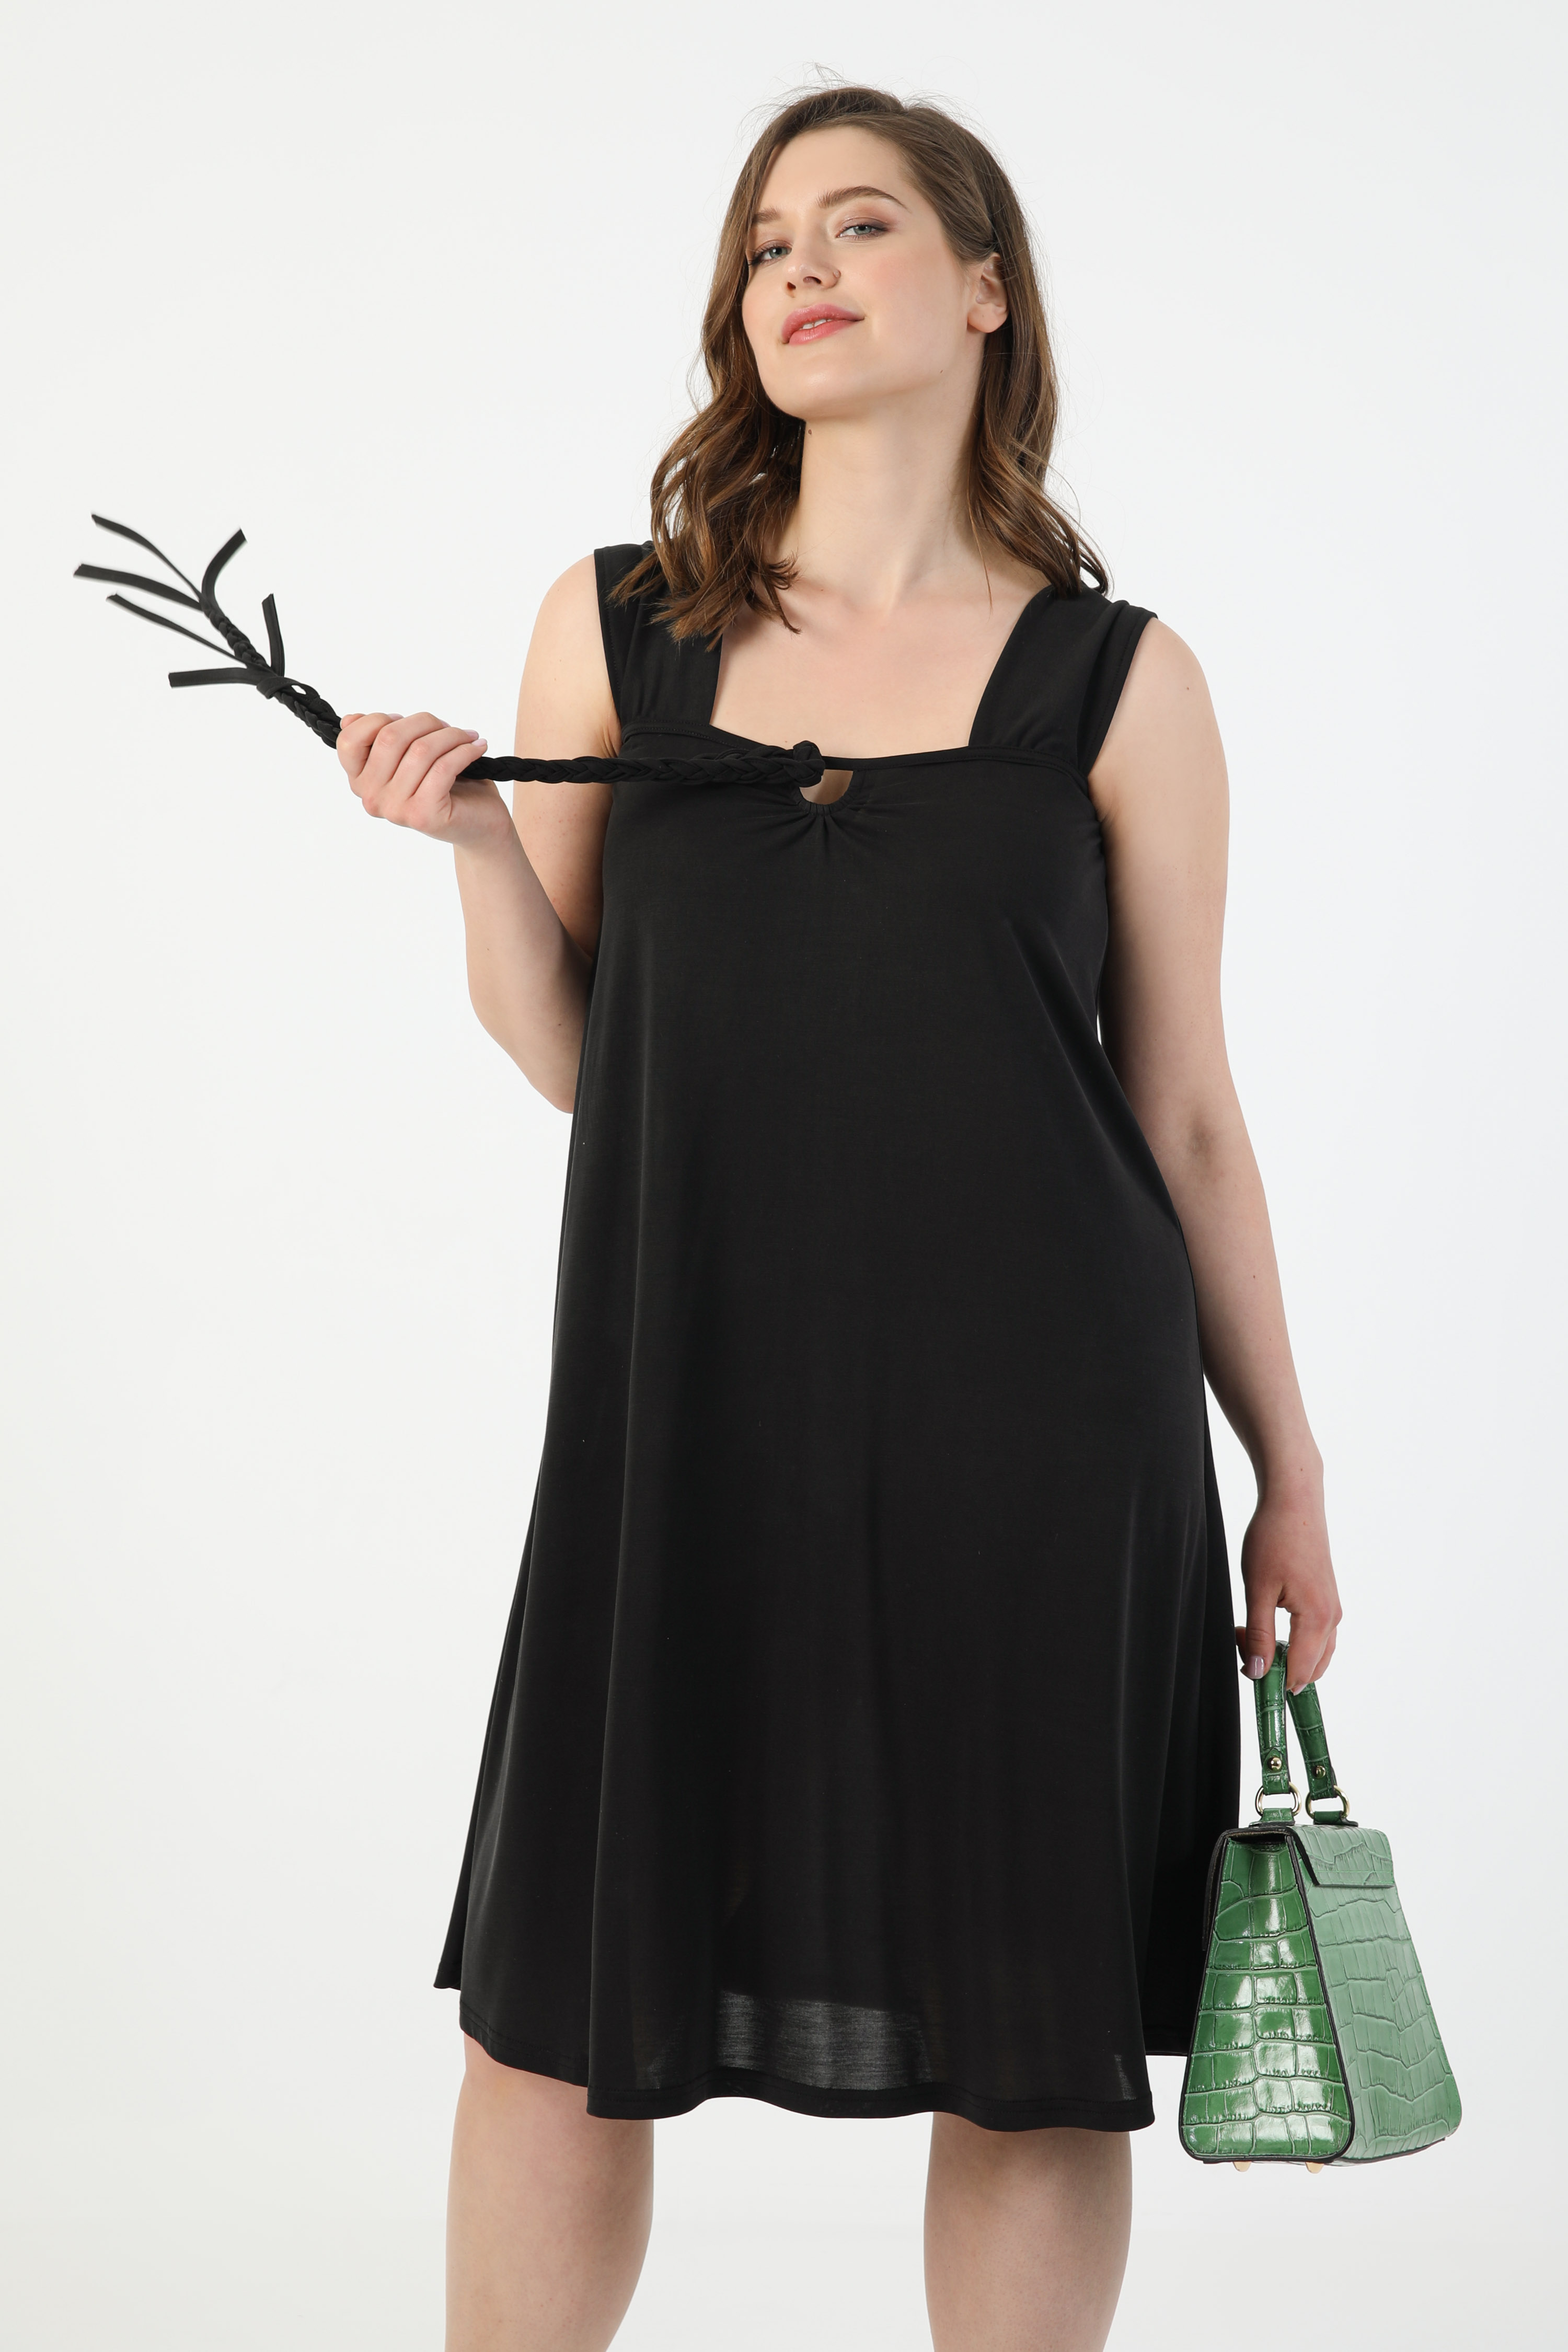 Plain knit dress with braid (expedition June 20/25)